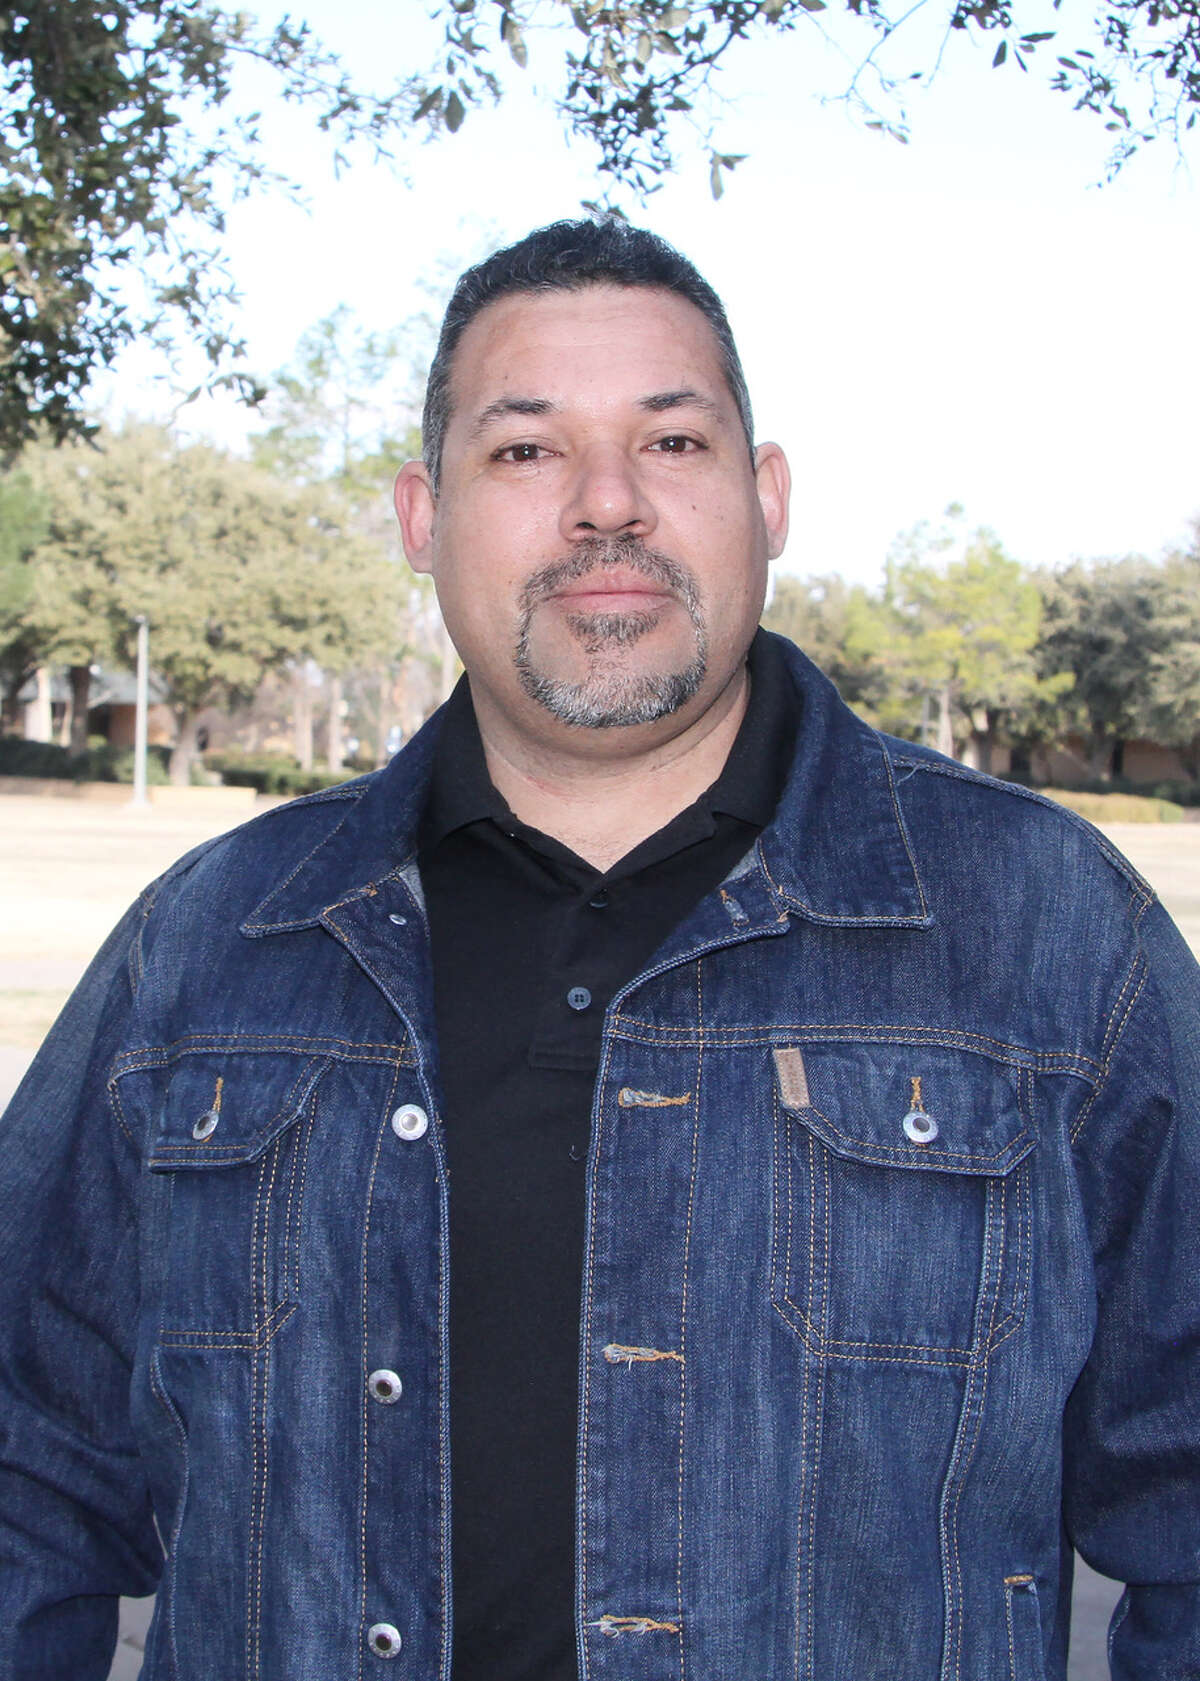 So, for 20 years, Rey Salgado worked in the auto paint and body field. He also enjoyed training and mentoring new employees.